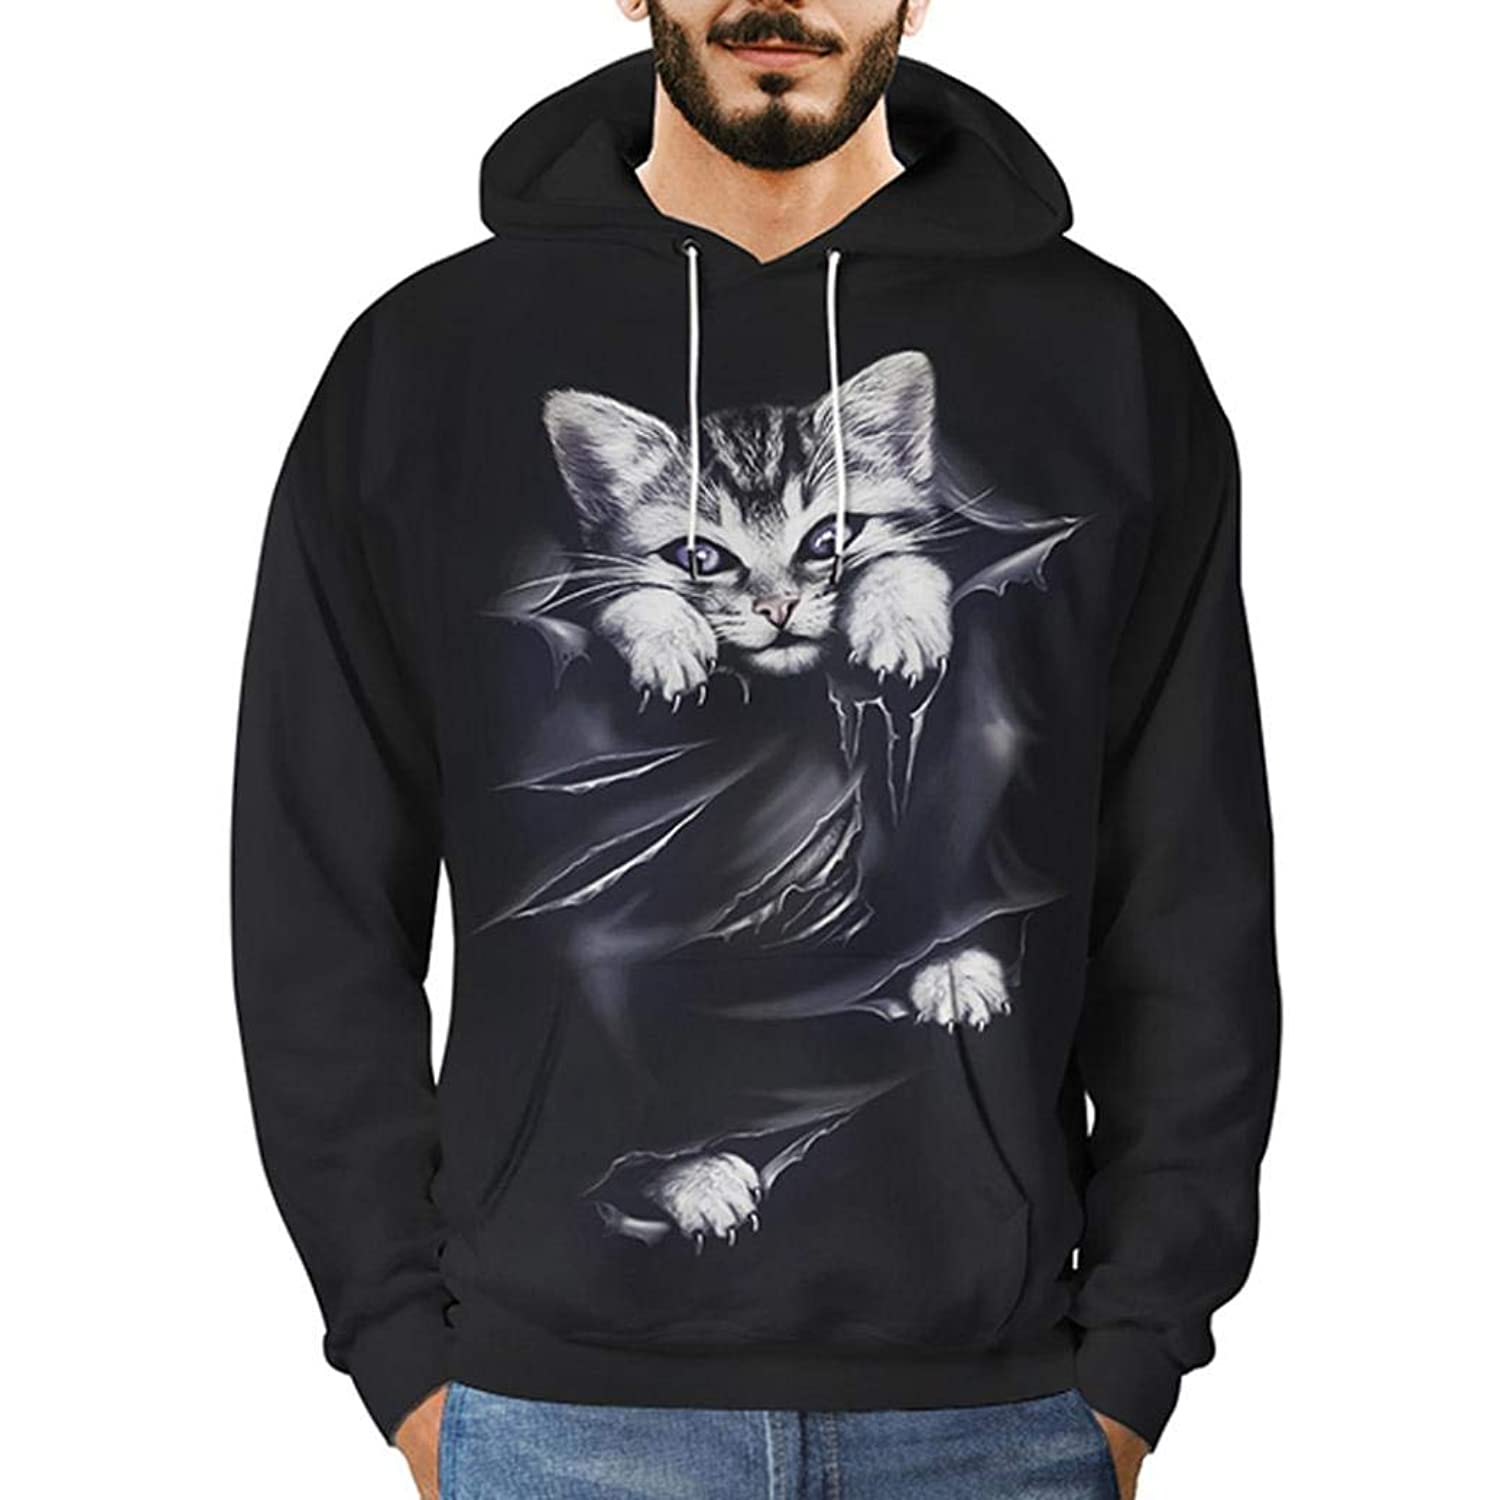 7caeb0c9b8b86f Top 10 wholesale Cat Hoodie For Guys - Chinabrands.com